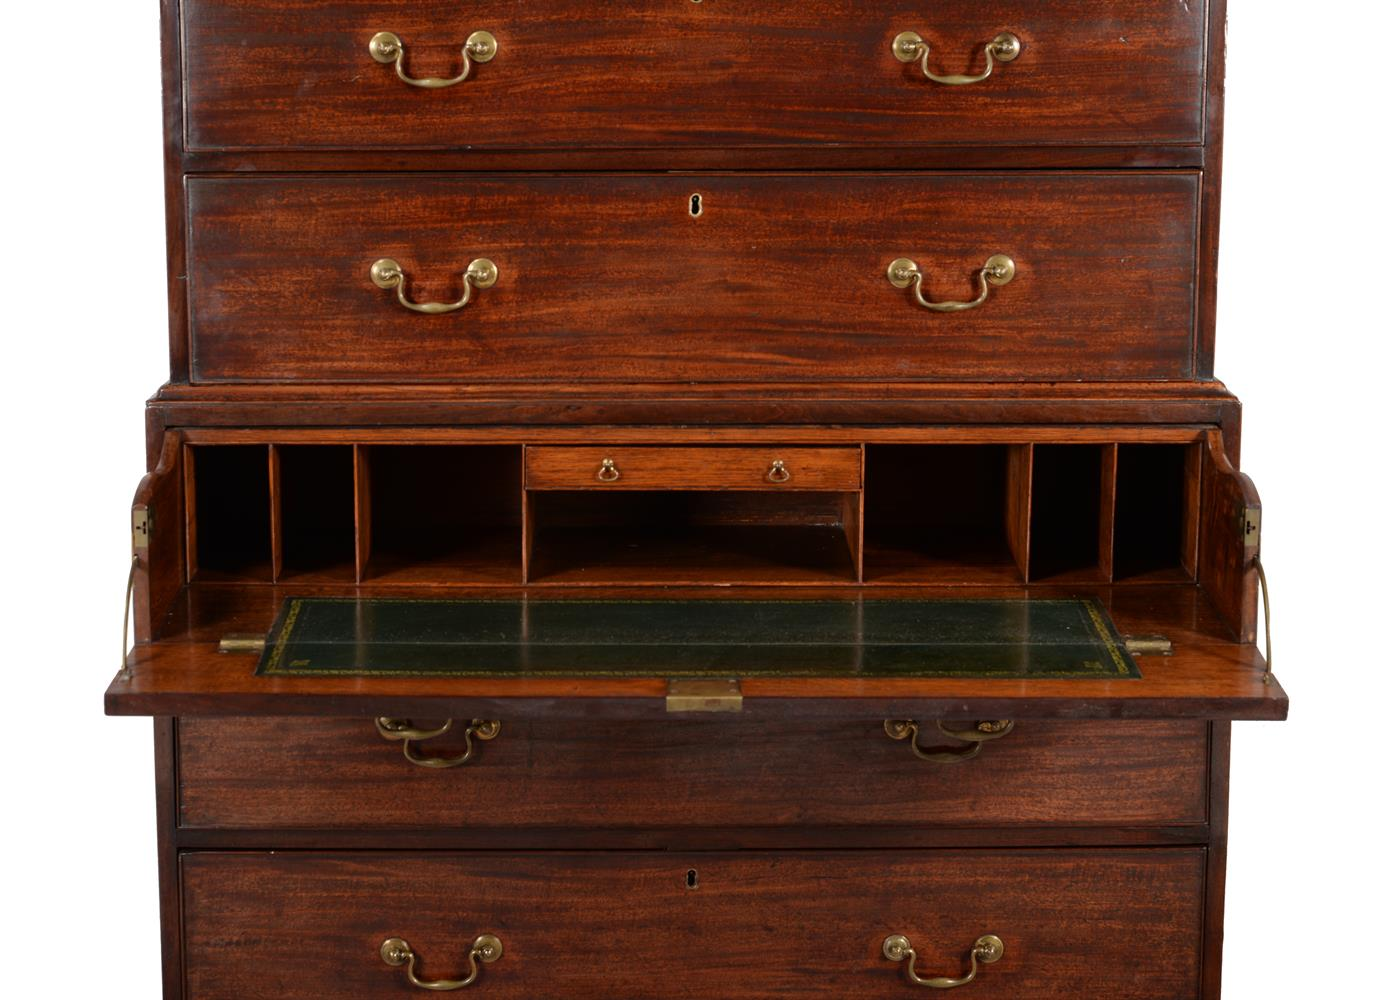 A George III mahogany secretaire chest on chest - Image 2 of 4